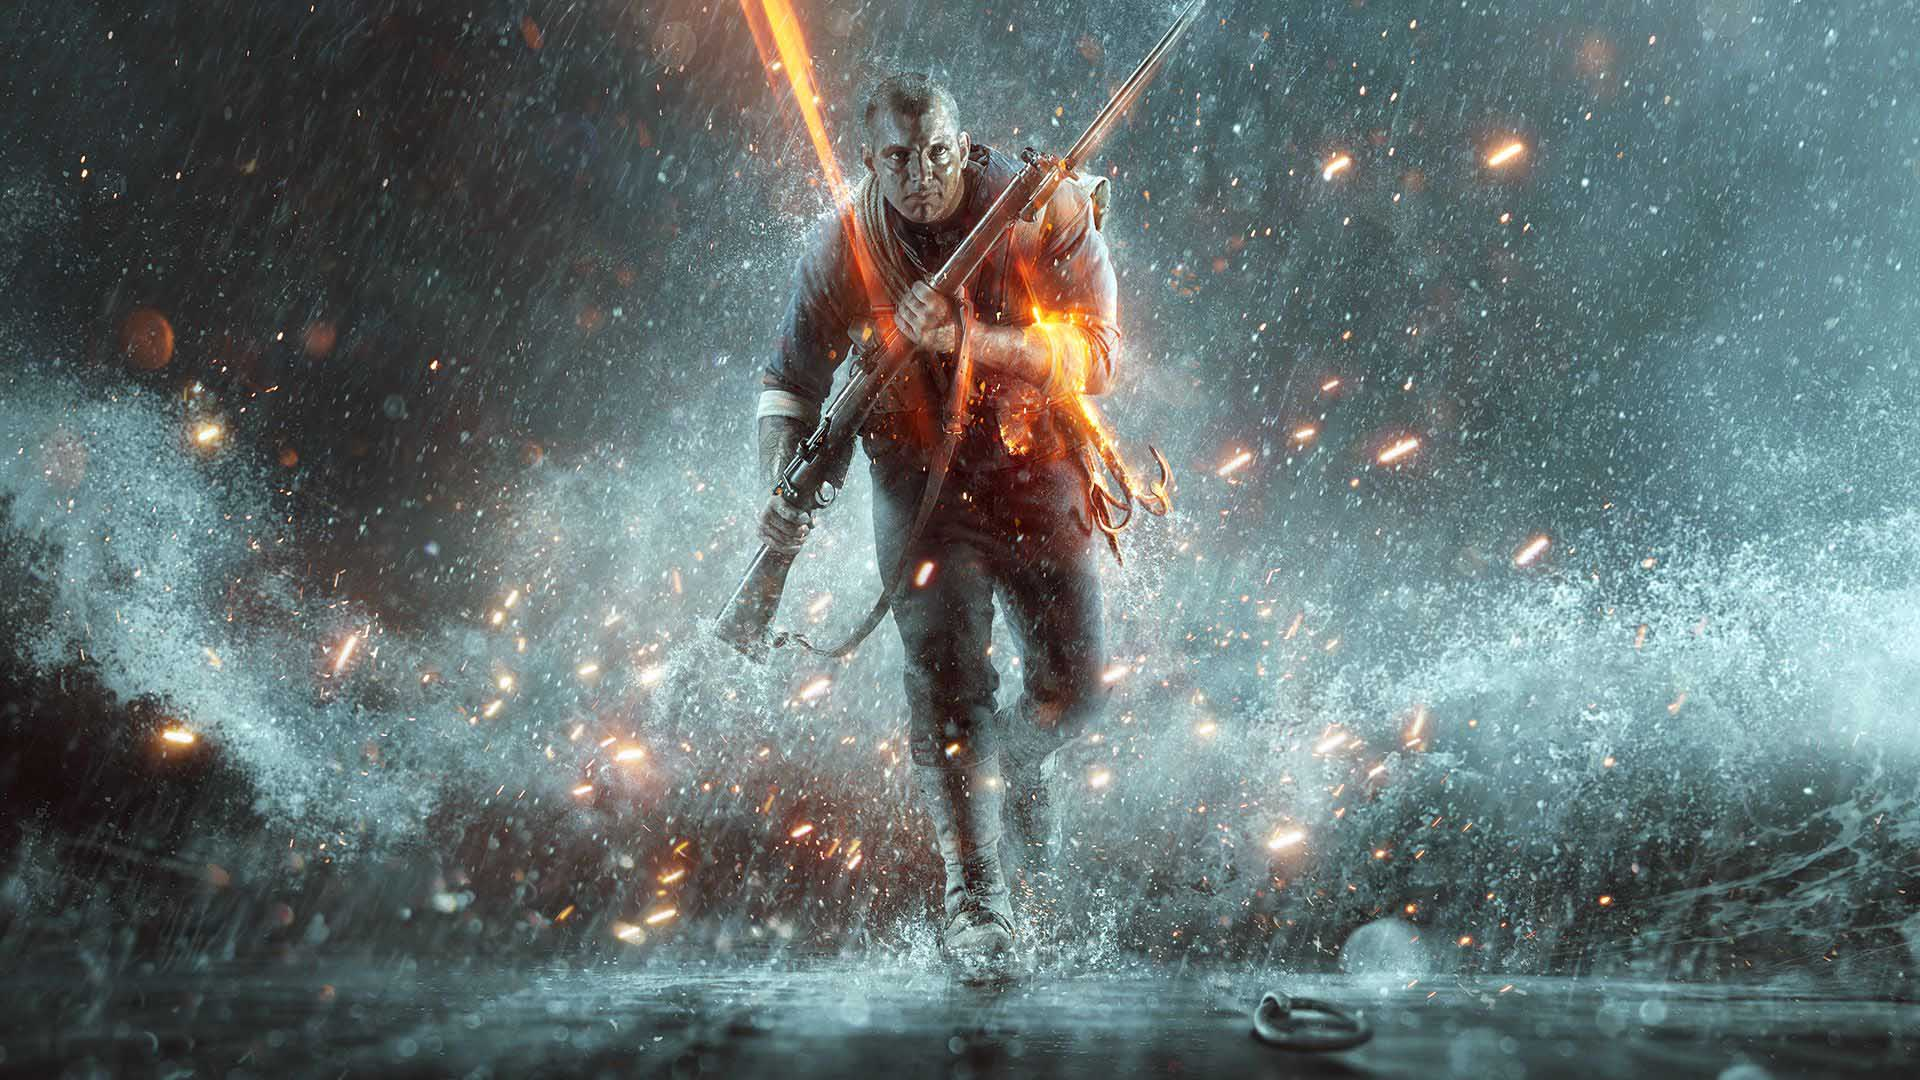 Battlefield 6's first images have been filtered